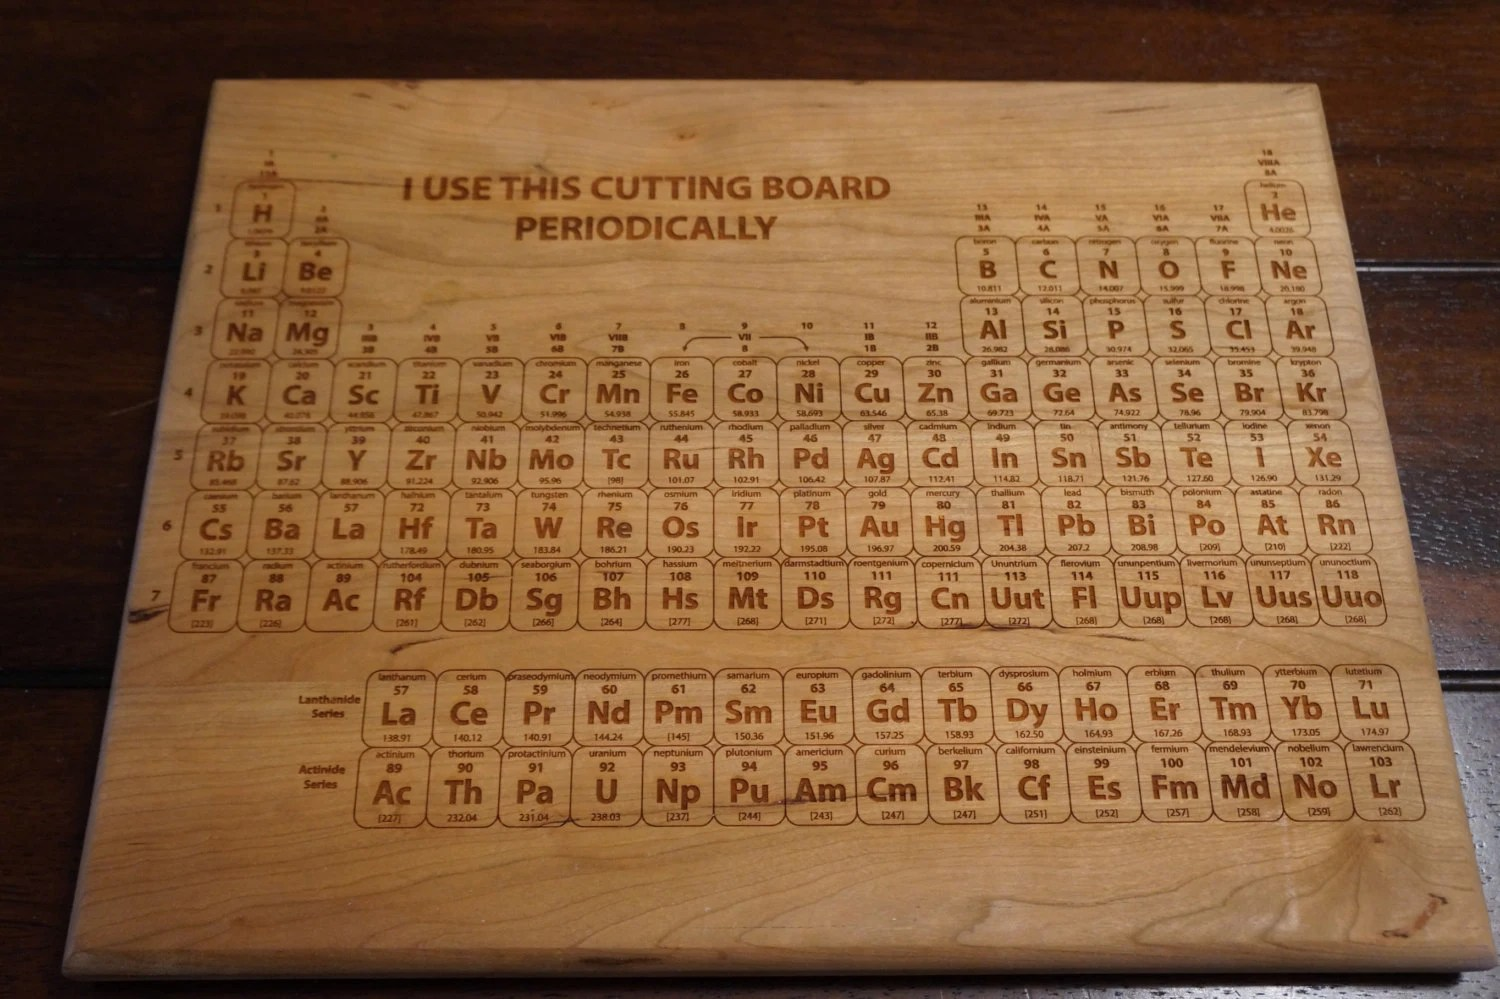 I Use This Cutting Board Periodically Cutting Board Periodic Table Cutting Board